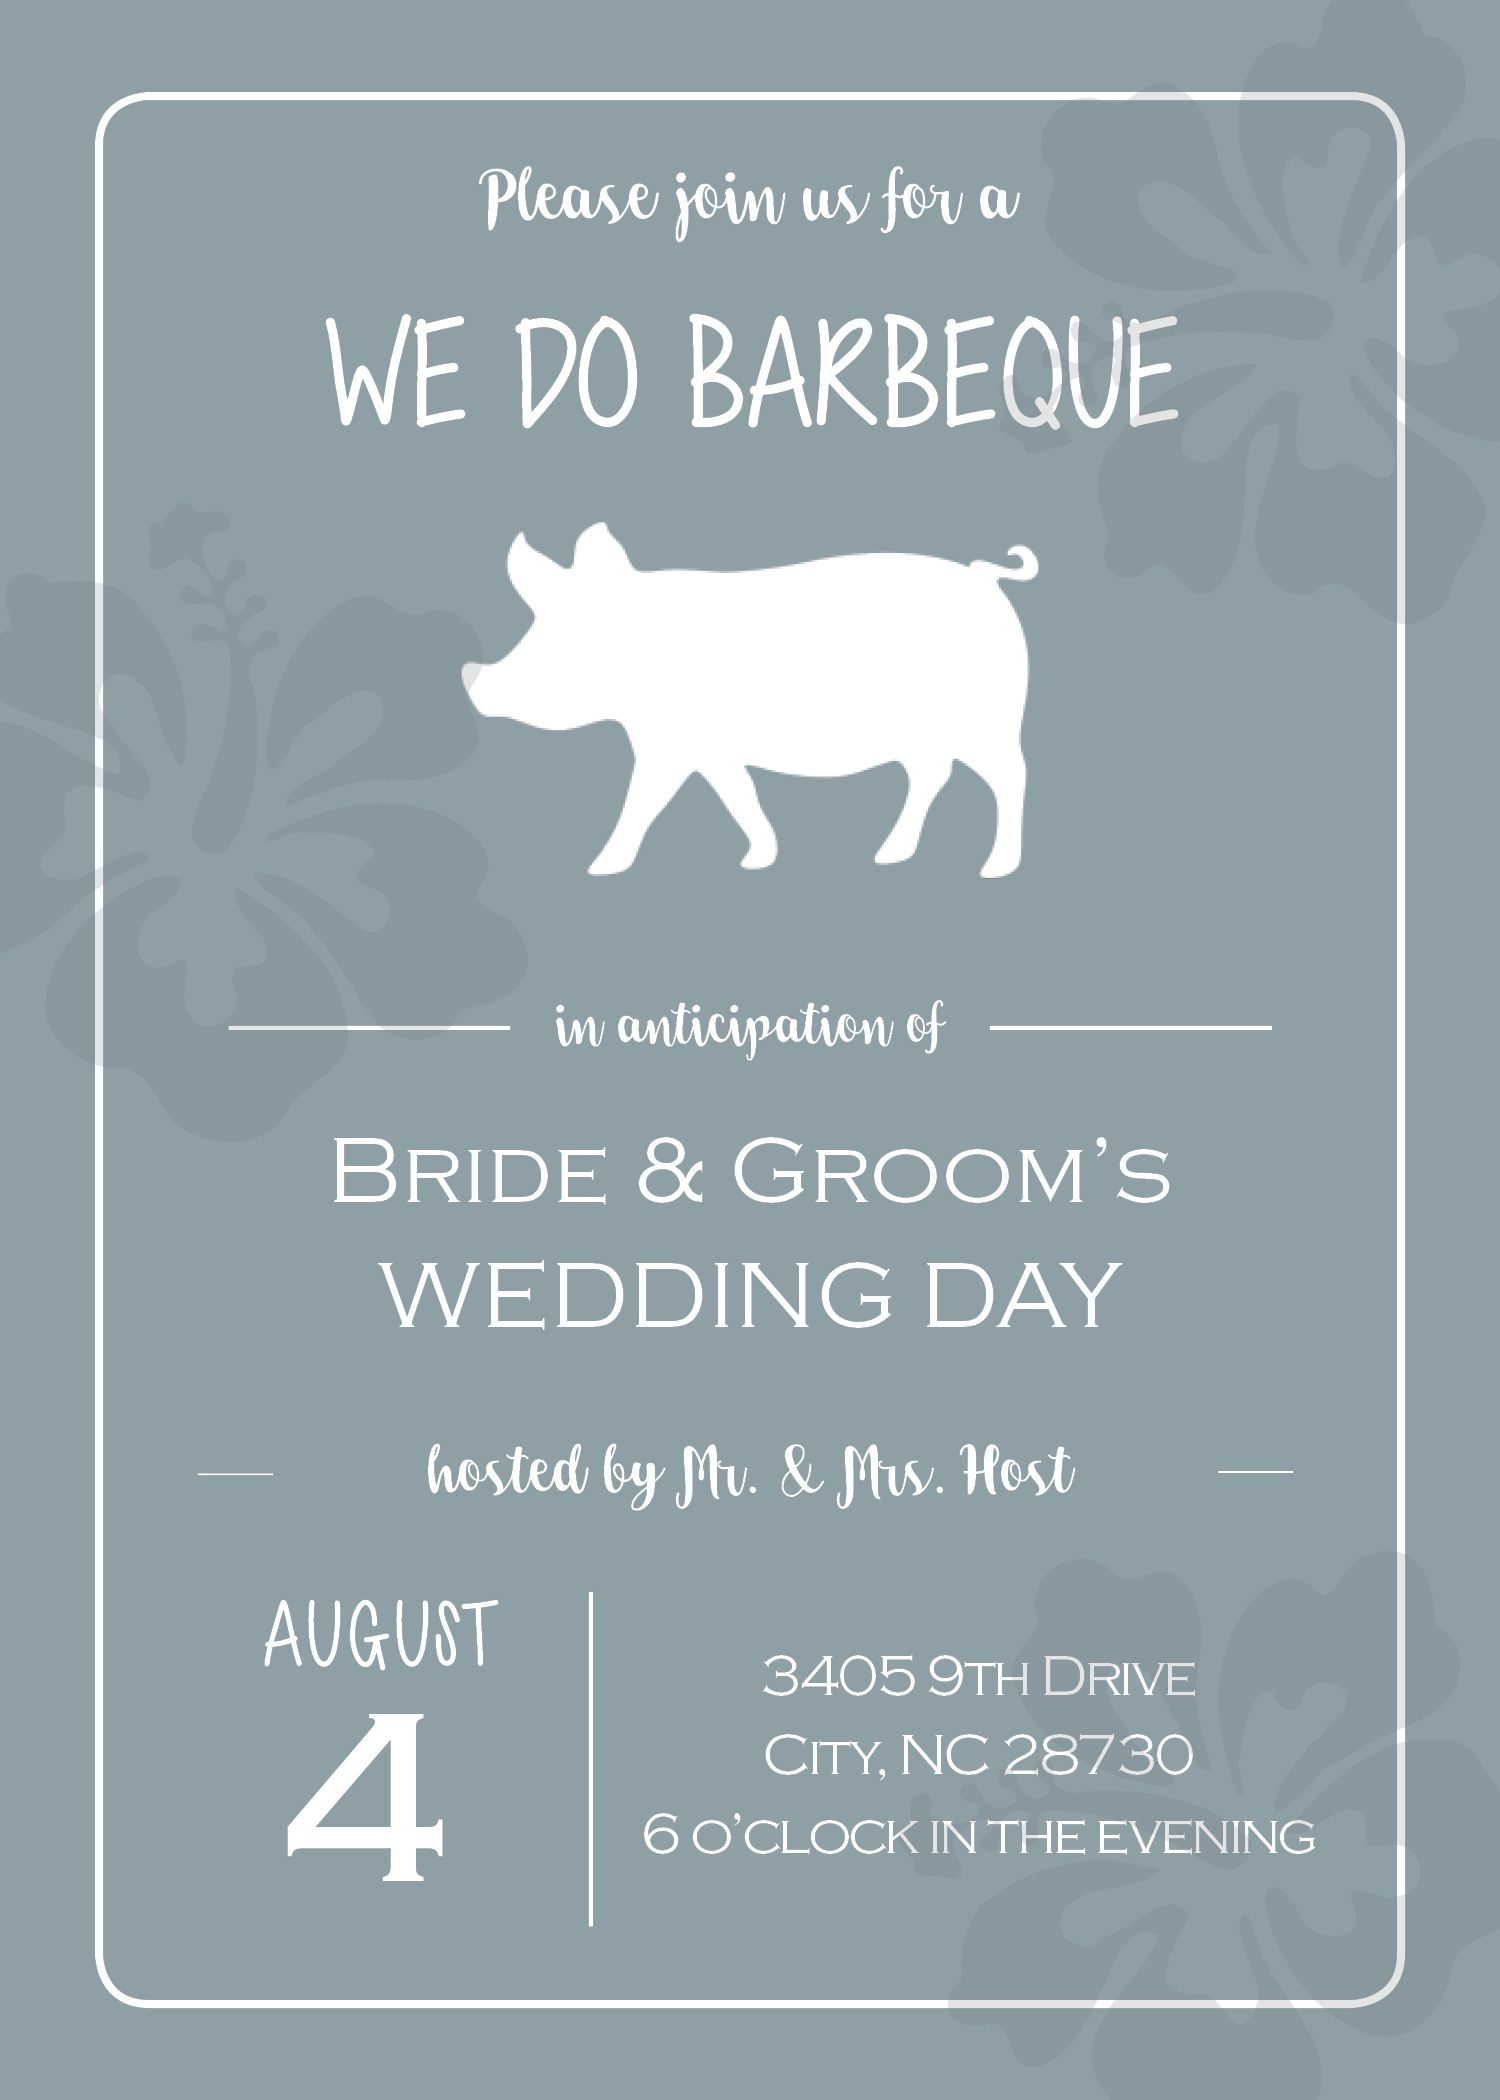 We Do Bbq Rehearsal Dinner Invitation Rehearsal Dinner Invitations